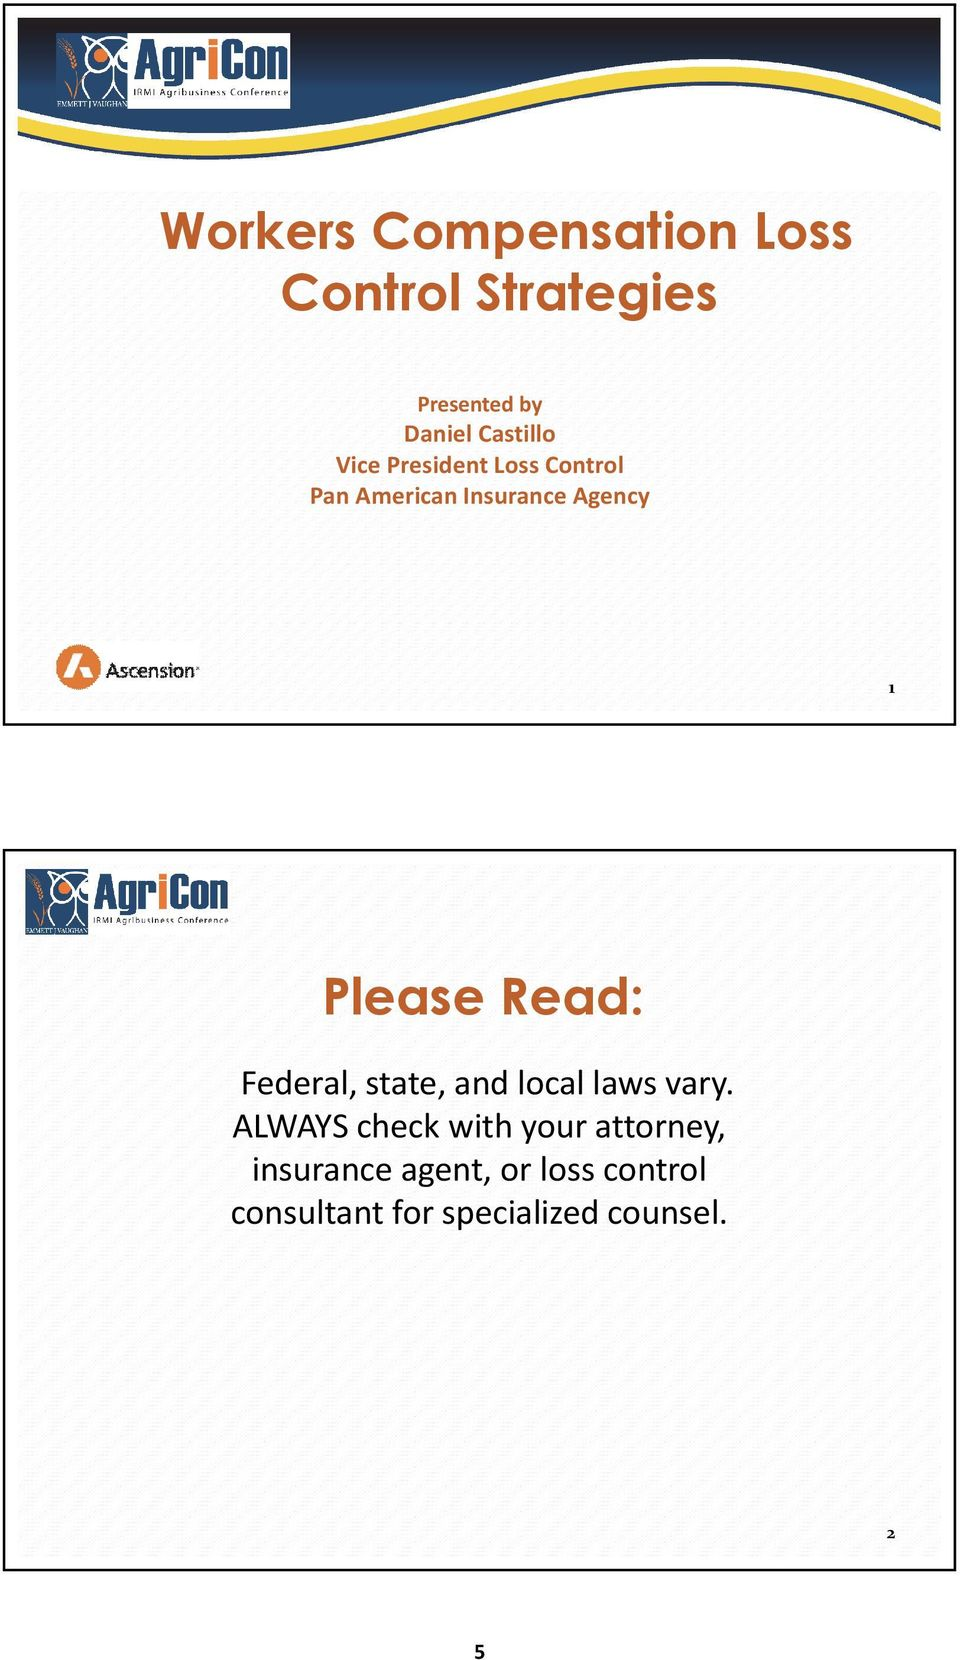 Please Read: Federal, state, and local laws vary.